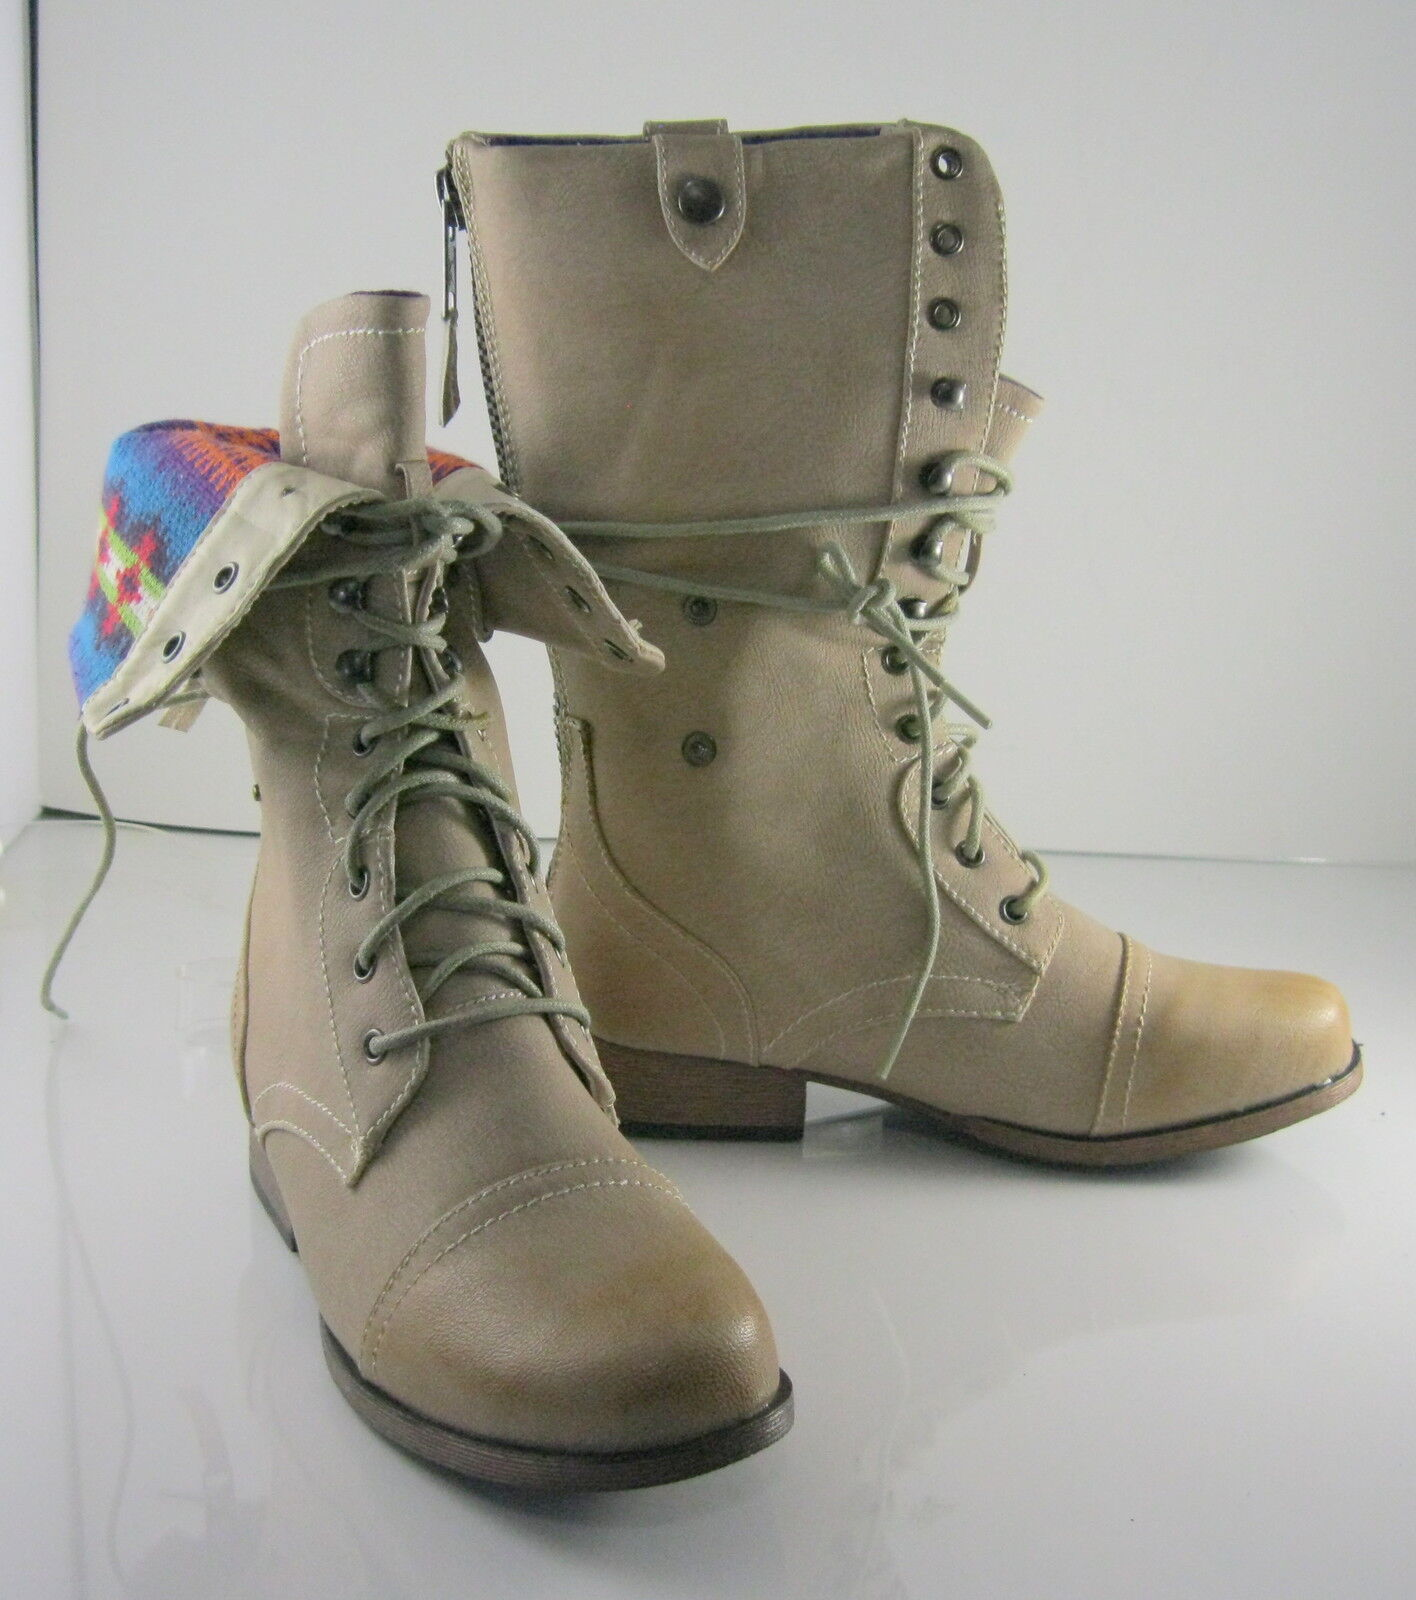 NEW Ivory Ankle Lace Combat Motorcycle Riding Winter Mid-Calf Boot Size 7.5